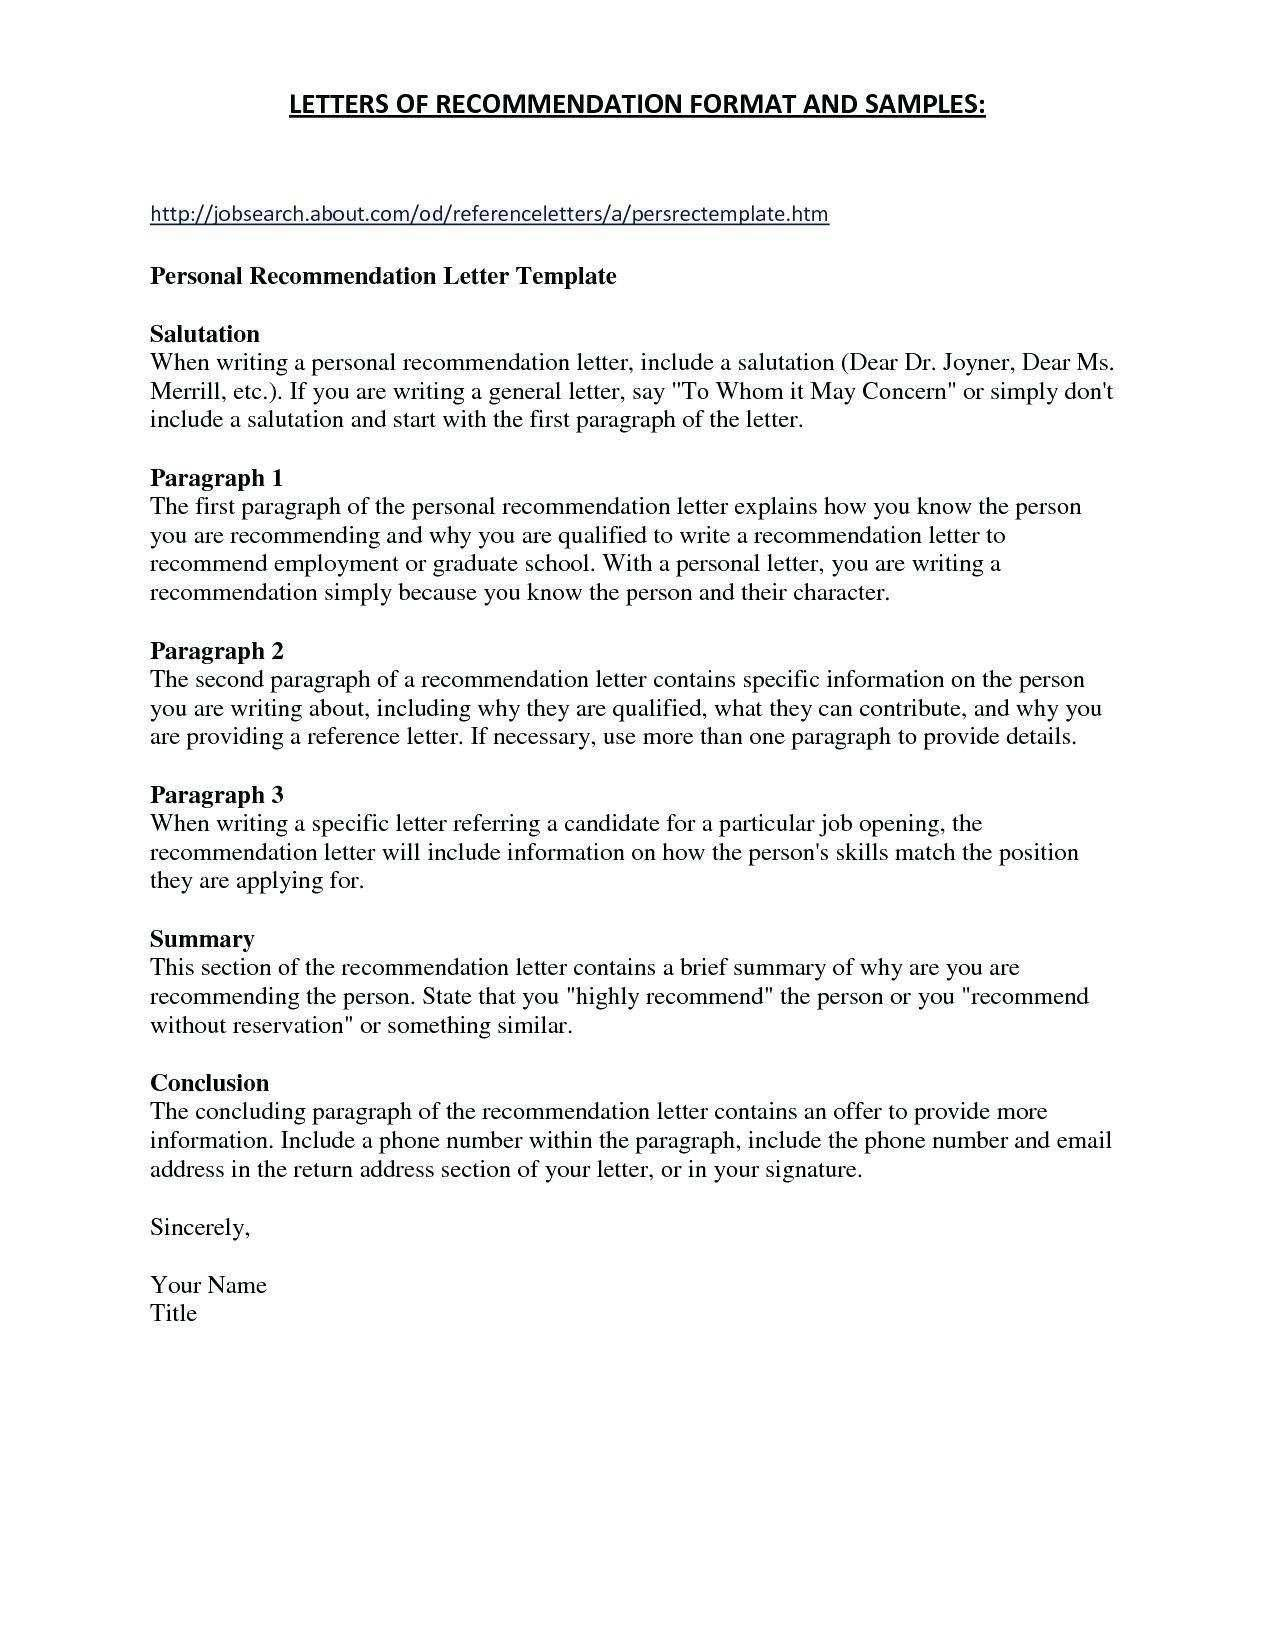 Services Rendered Contract Template